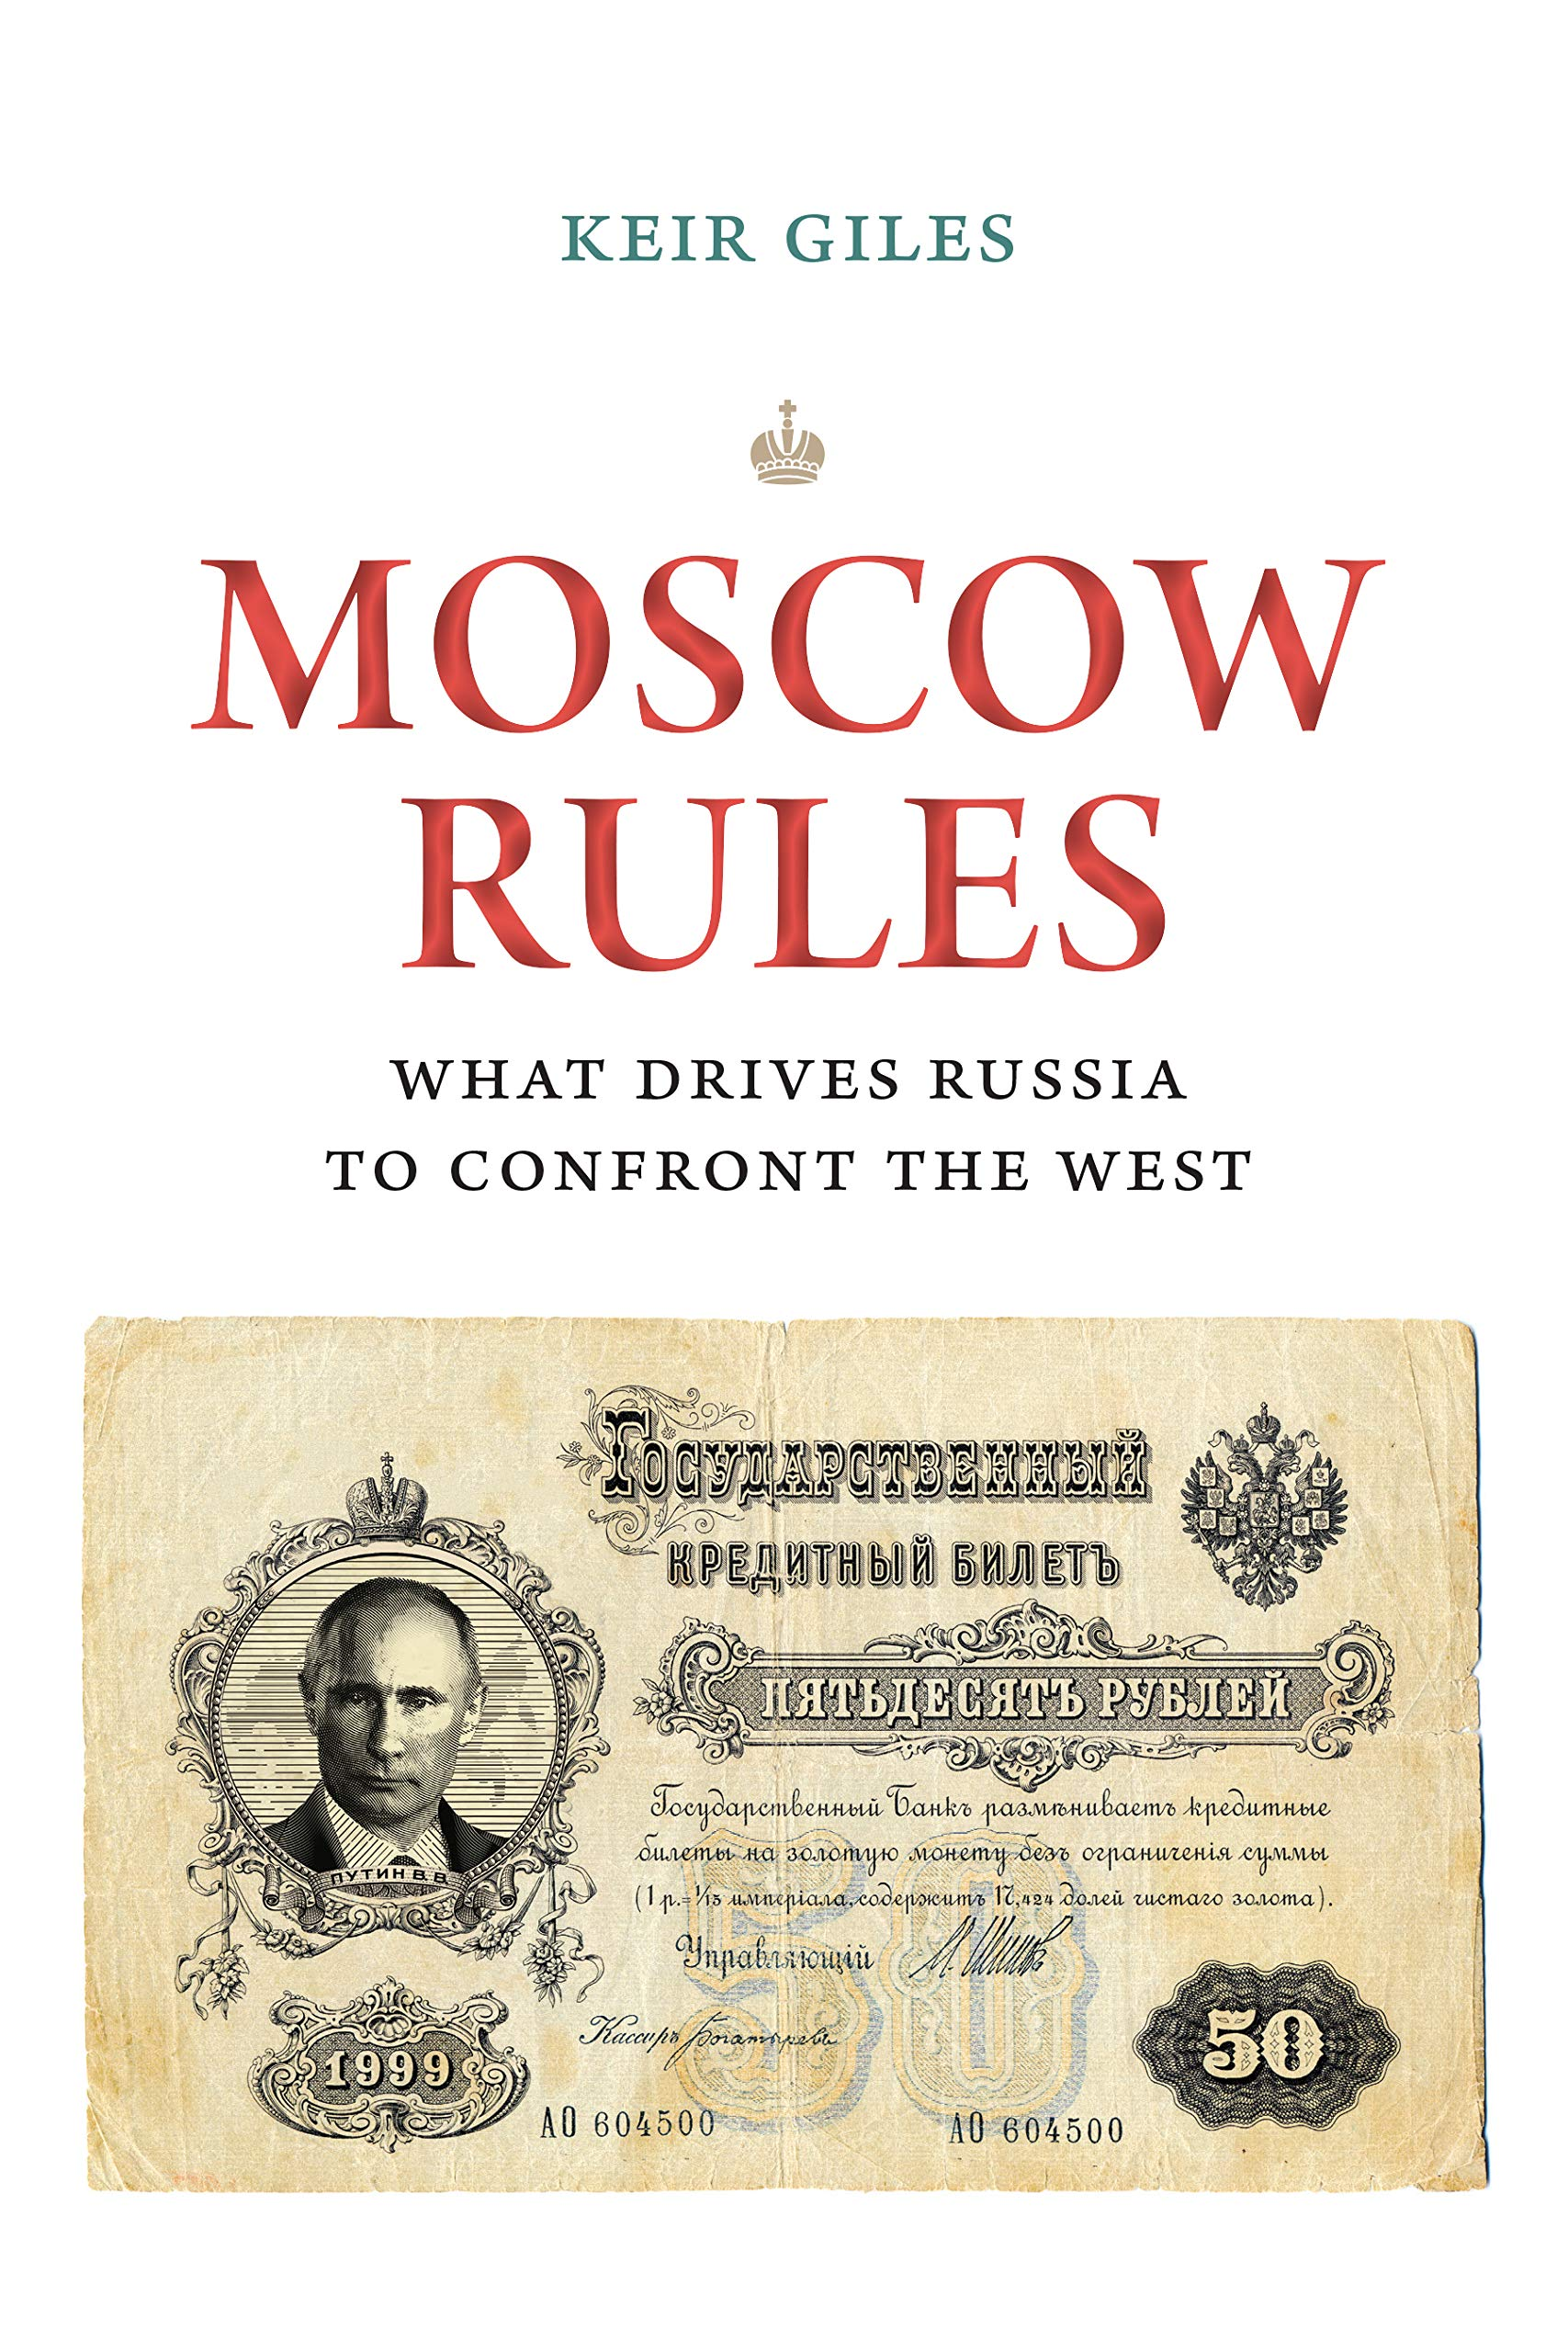 Moscow Rules: What Drives Russia to Confront the West (Chatham House Insights) por Keir Giles